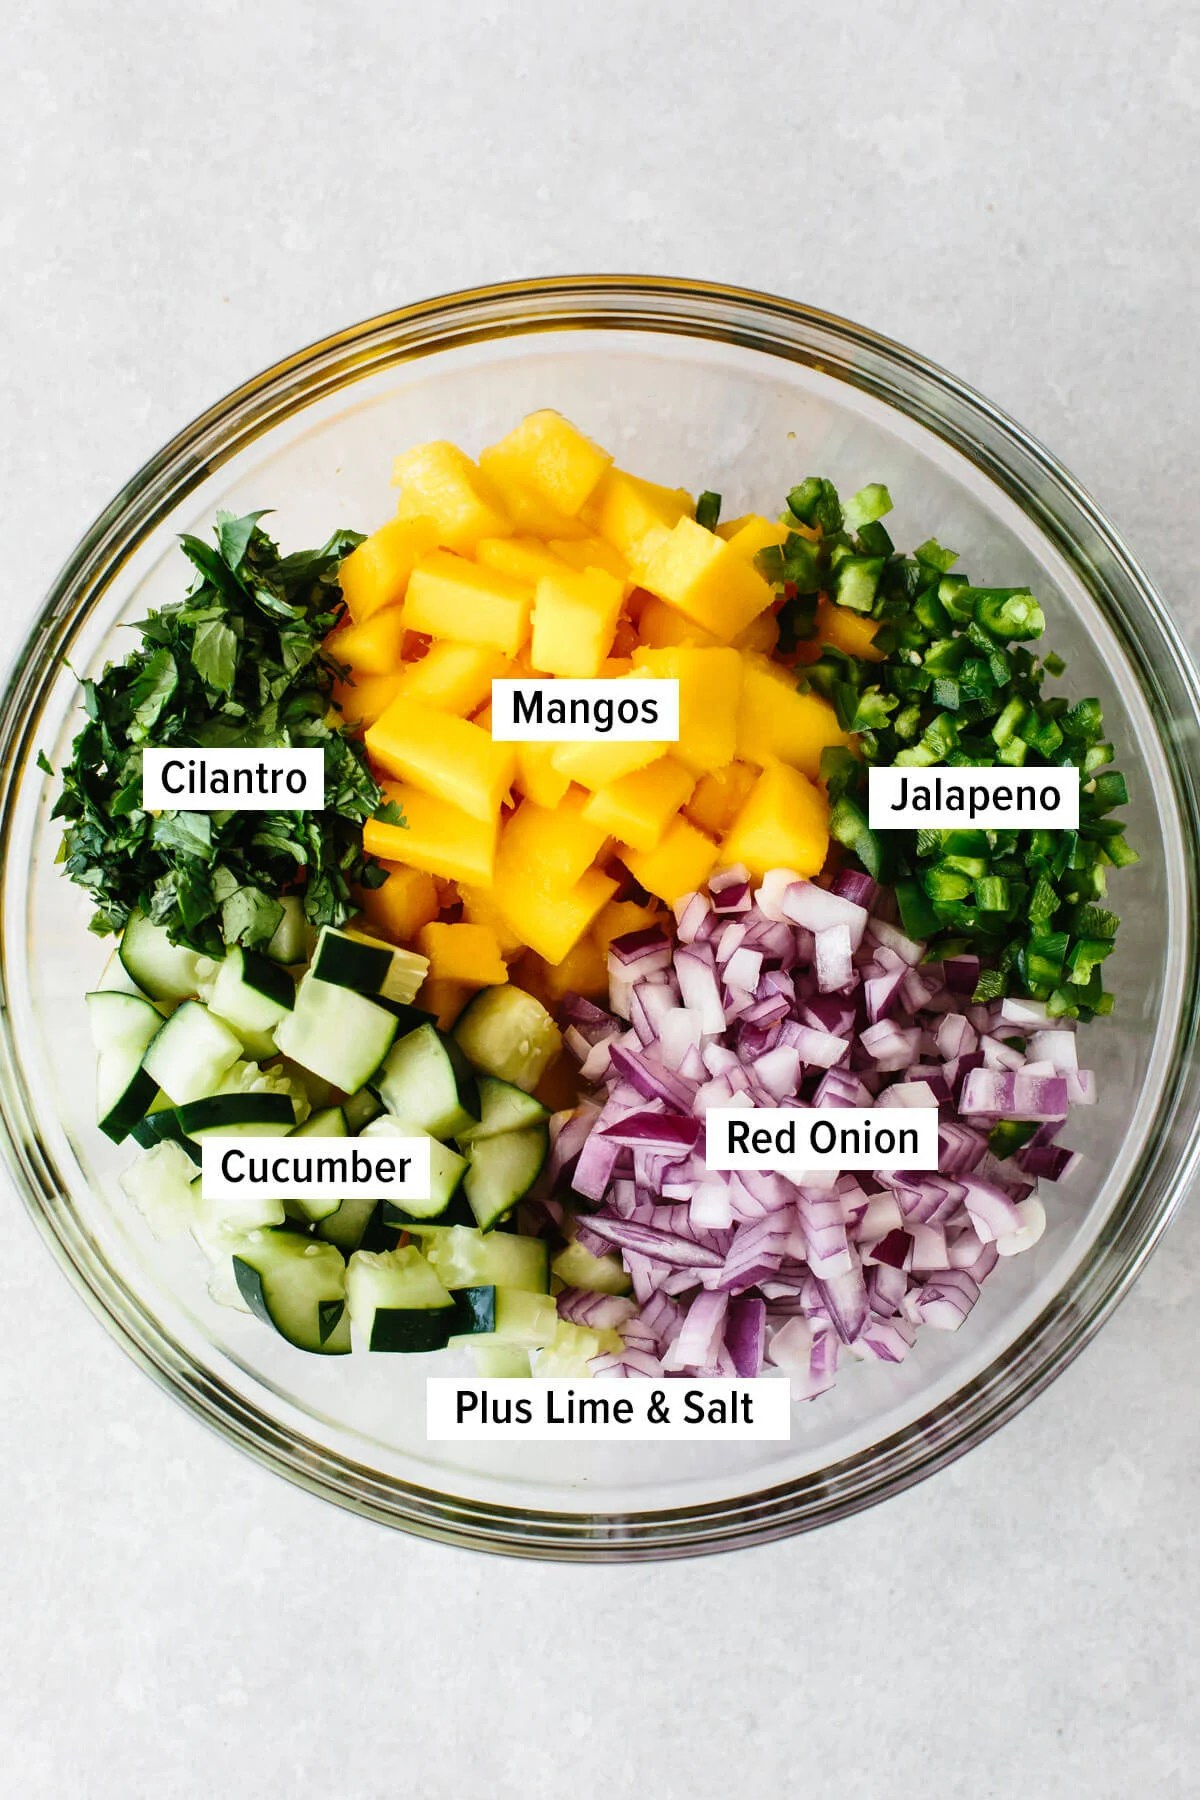 Ingredients for mango salsa in a bowl.